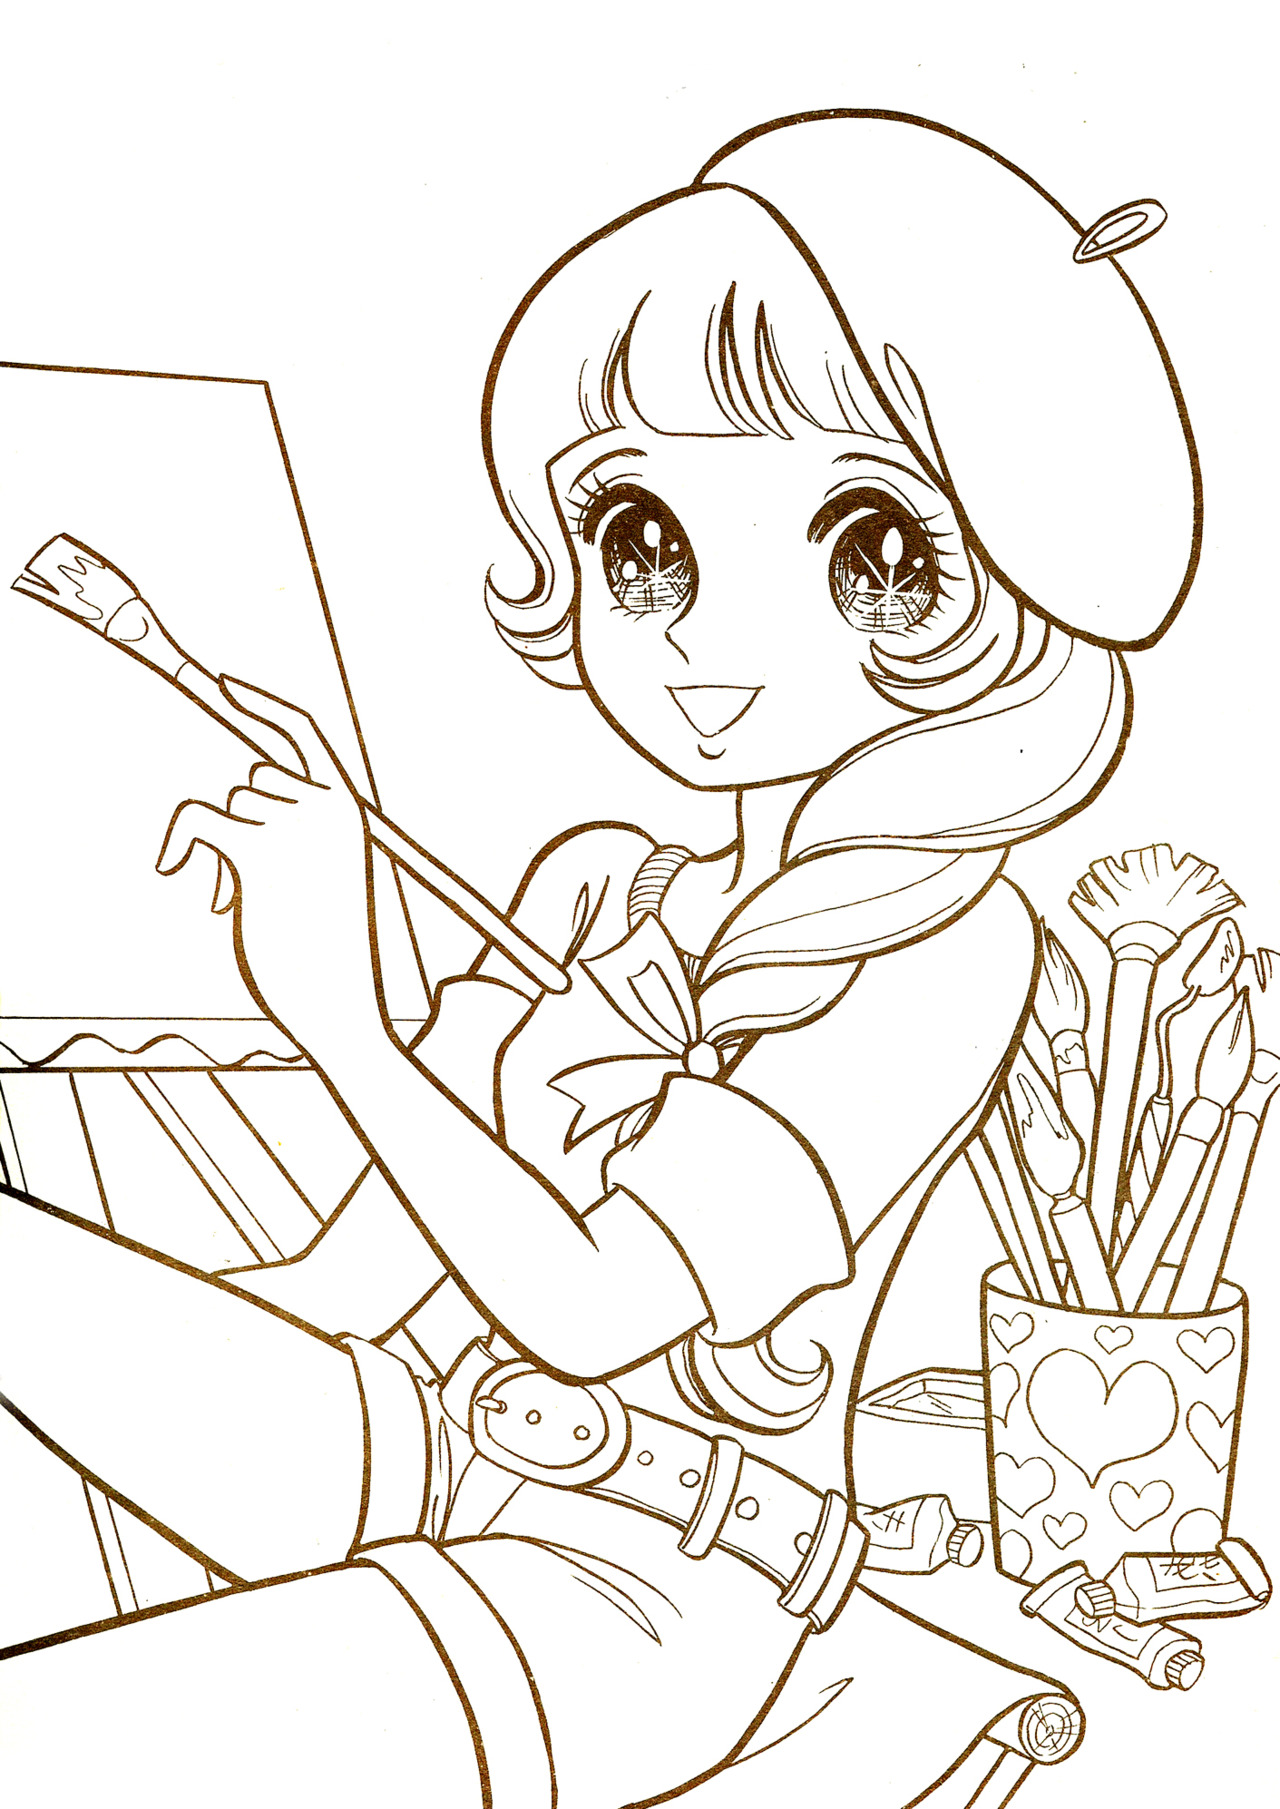 1280x1809 Abfebfddbeedabda About Manga Coloring Pages On With Hd Resolution